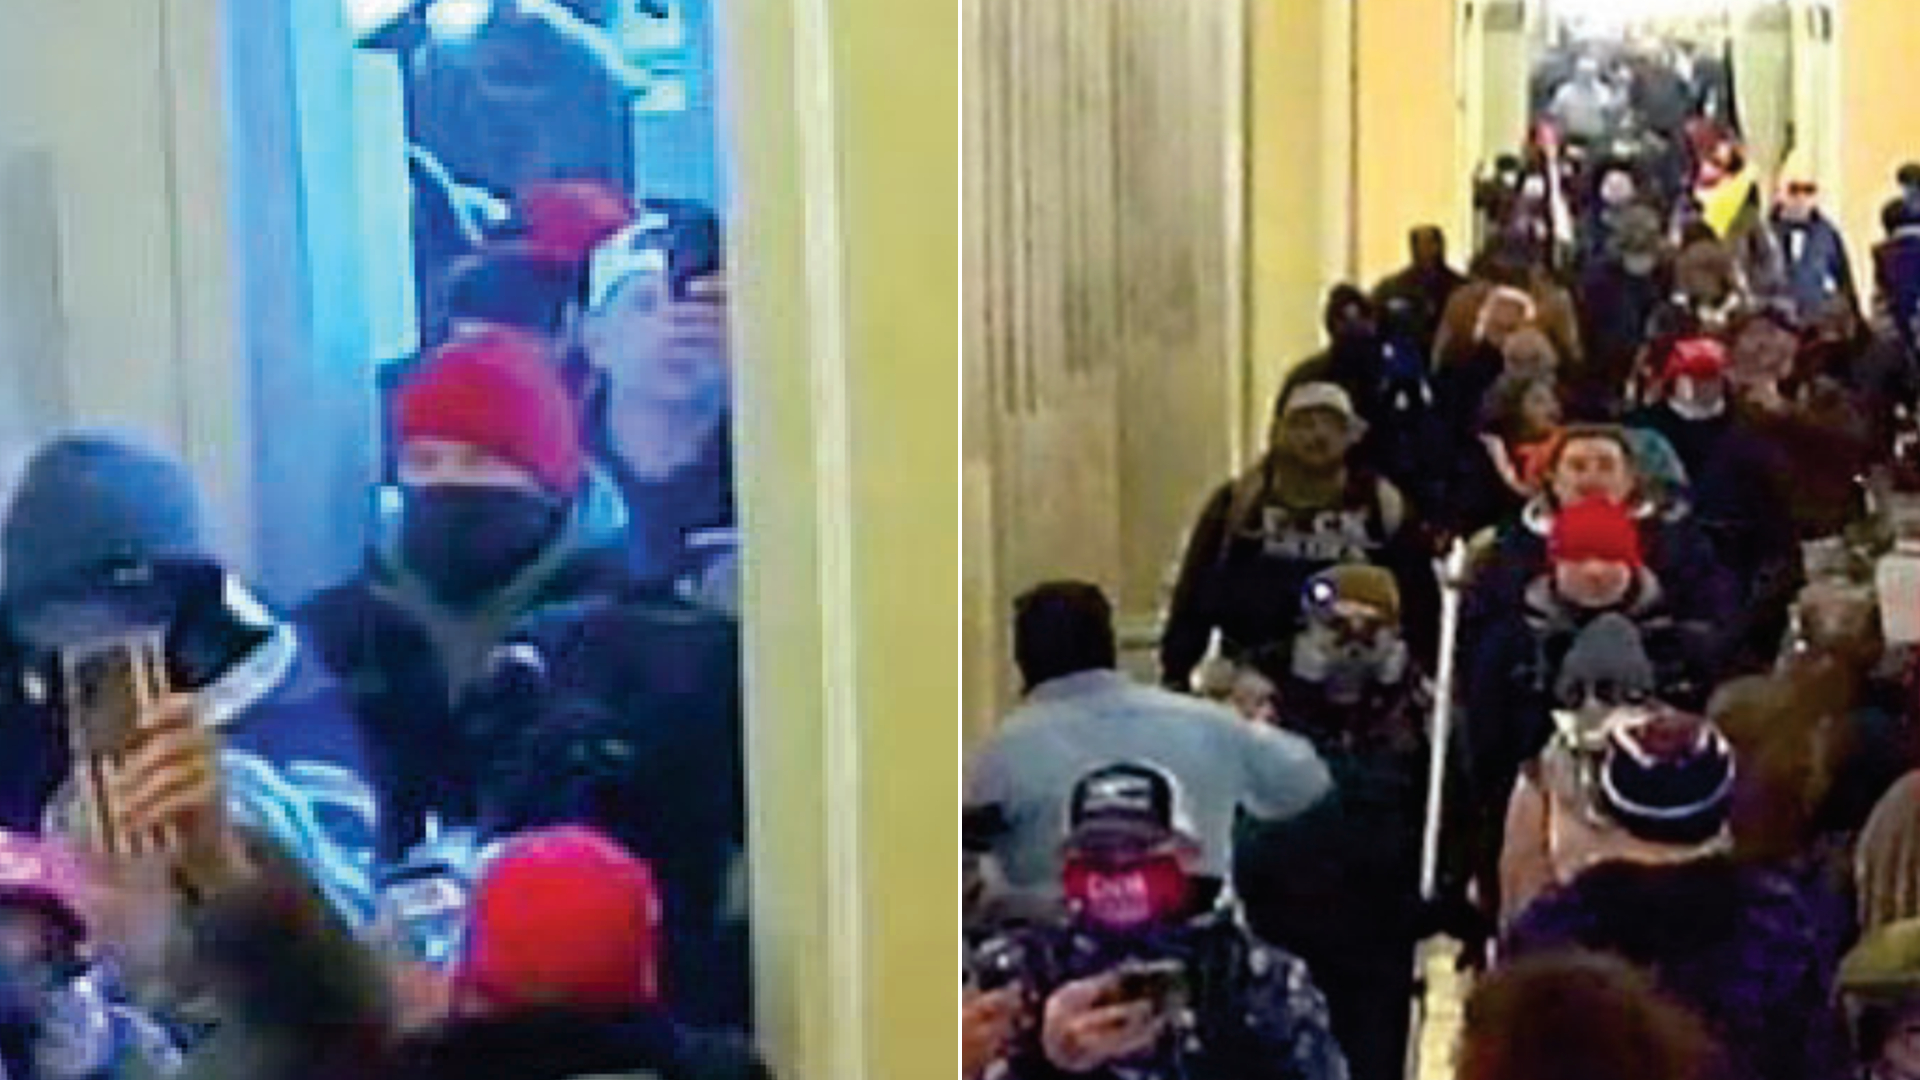 A man who federal agents believe is Victorville gym owner Jacob Lewis, at center in a red beanie, is seen among the crowd storming the U.S. Capitol on Jan. 6, 2021, in stills from video included in a Jan. 22, 2021, criminal complaint for the U.S. Attorney's Office for the Central District of California.